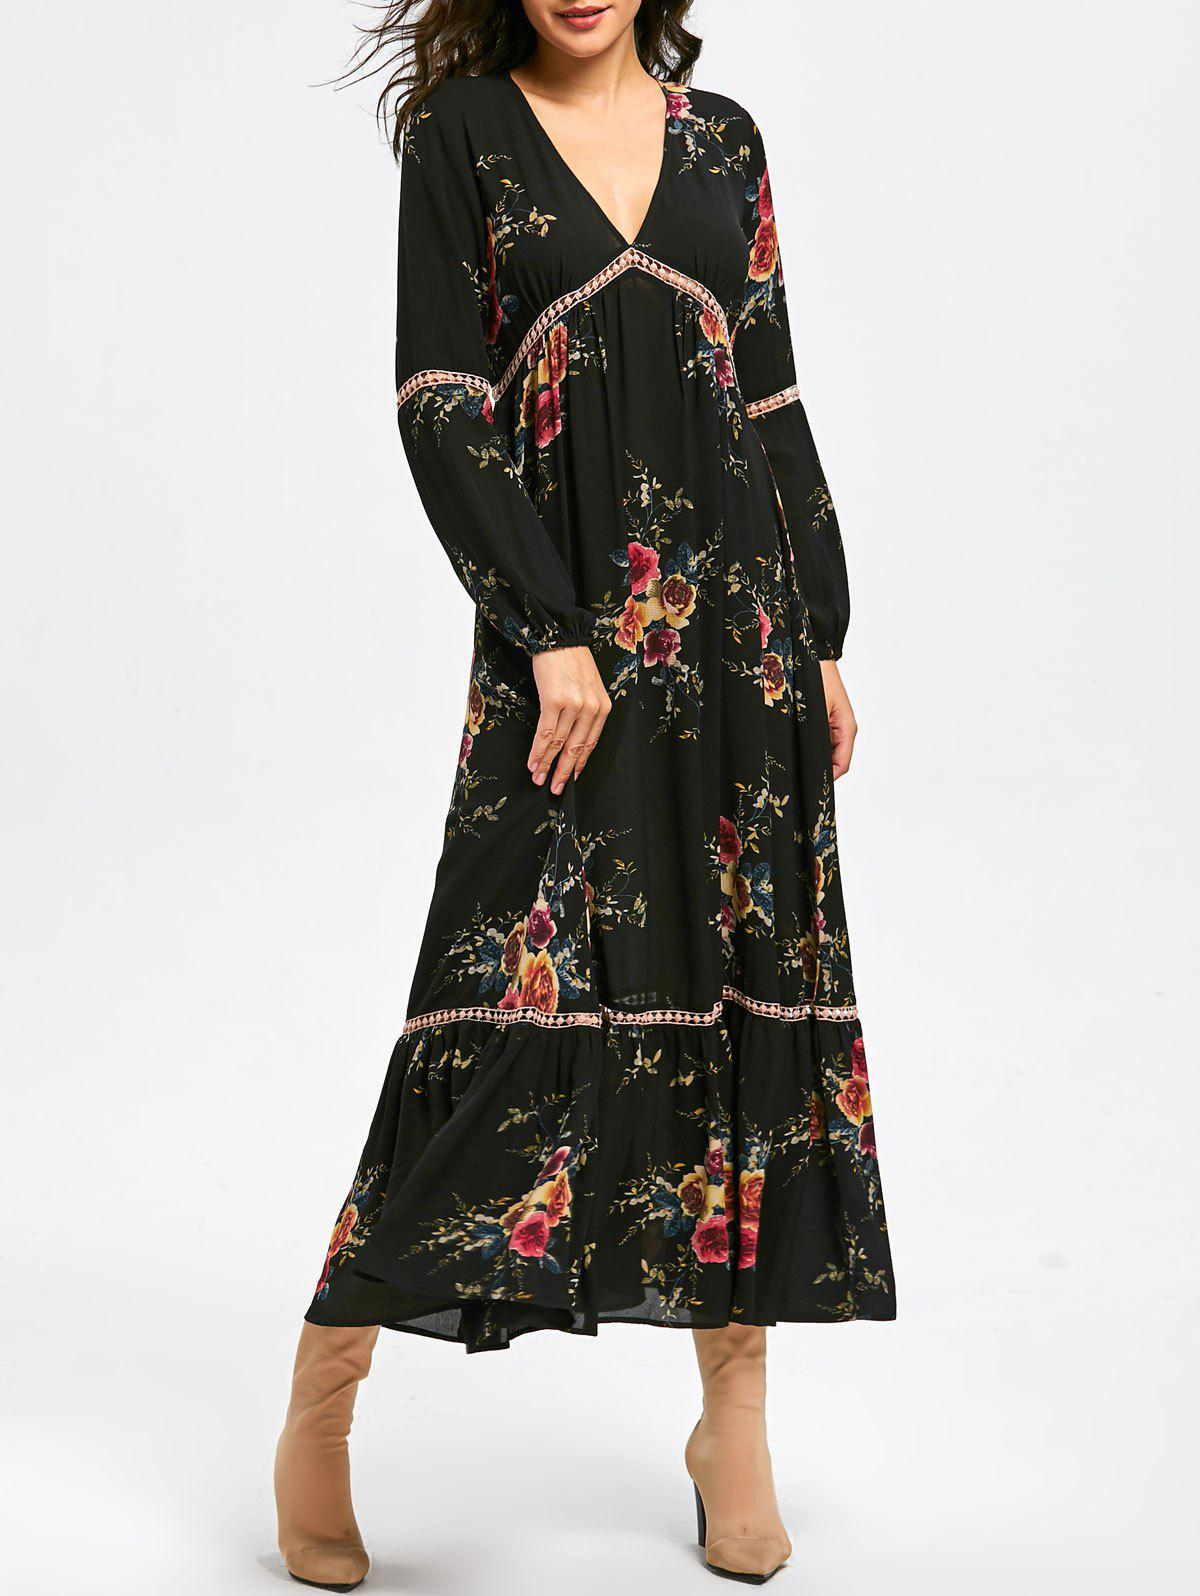 Empire Waist Floral Print Maxi DressWOMEN<br><br>Size: L; Color: BLACK; Style: Casual; Material: Polyester; Silhouette: A-Line; Dresses Length: Ankle-Length; Neckline: V-Neck; Sleeve Type: Cuff Sleeve; Sleeve Length: Long Sleeves; Waist: Empire; Embellishment: Lace; Pattern Type: Floral,Print; With Belt: No; Season: Fall,Spring,Winter; Weight: 0.4500kg; Package Contents: 1 x Dress;